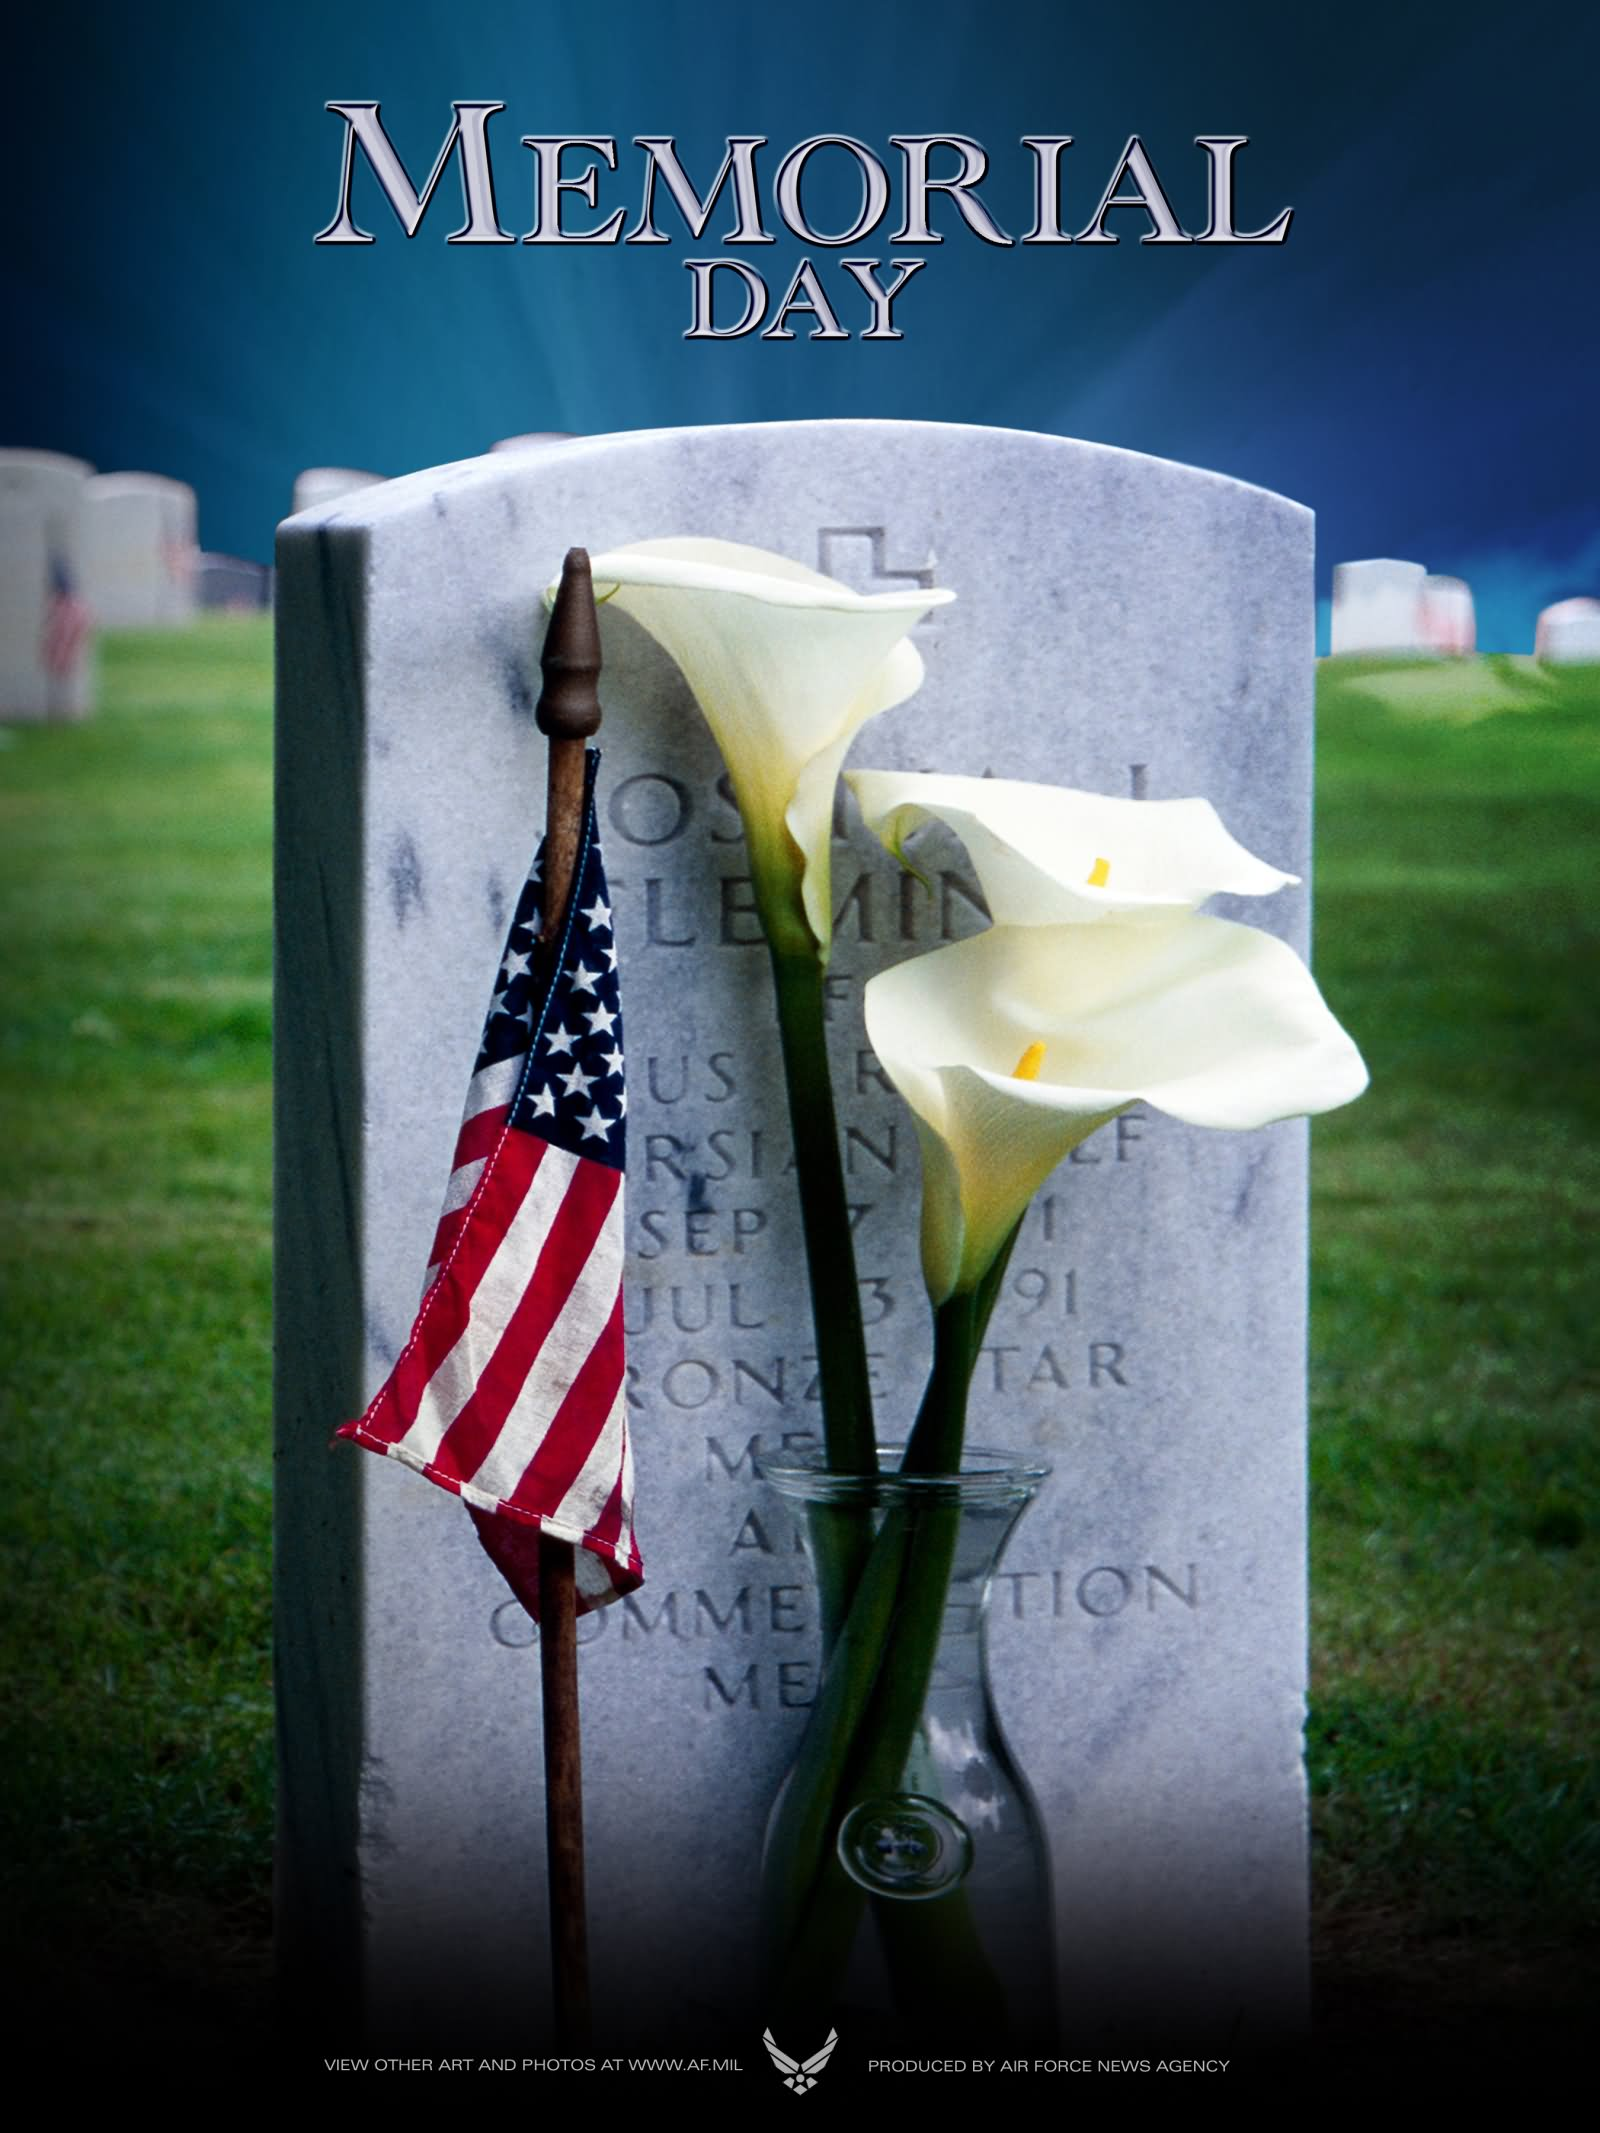 50 Most Beautiful Memorial Day Wish Pictures And Images